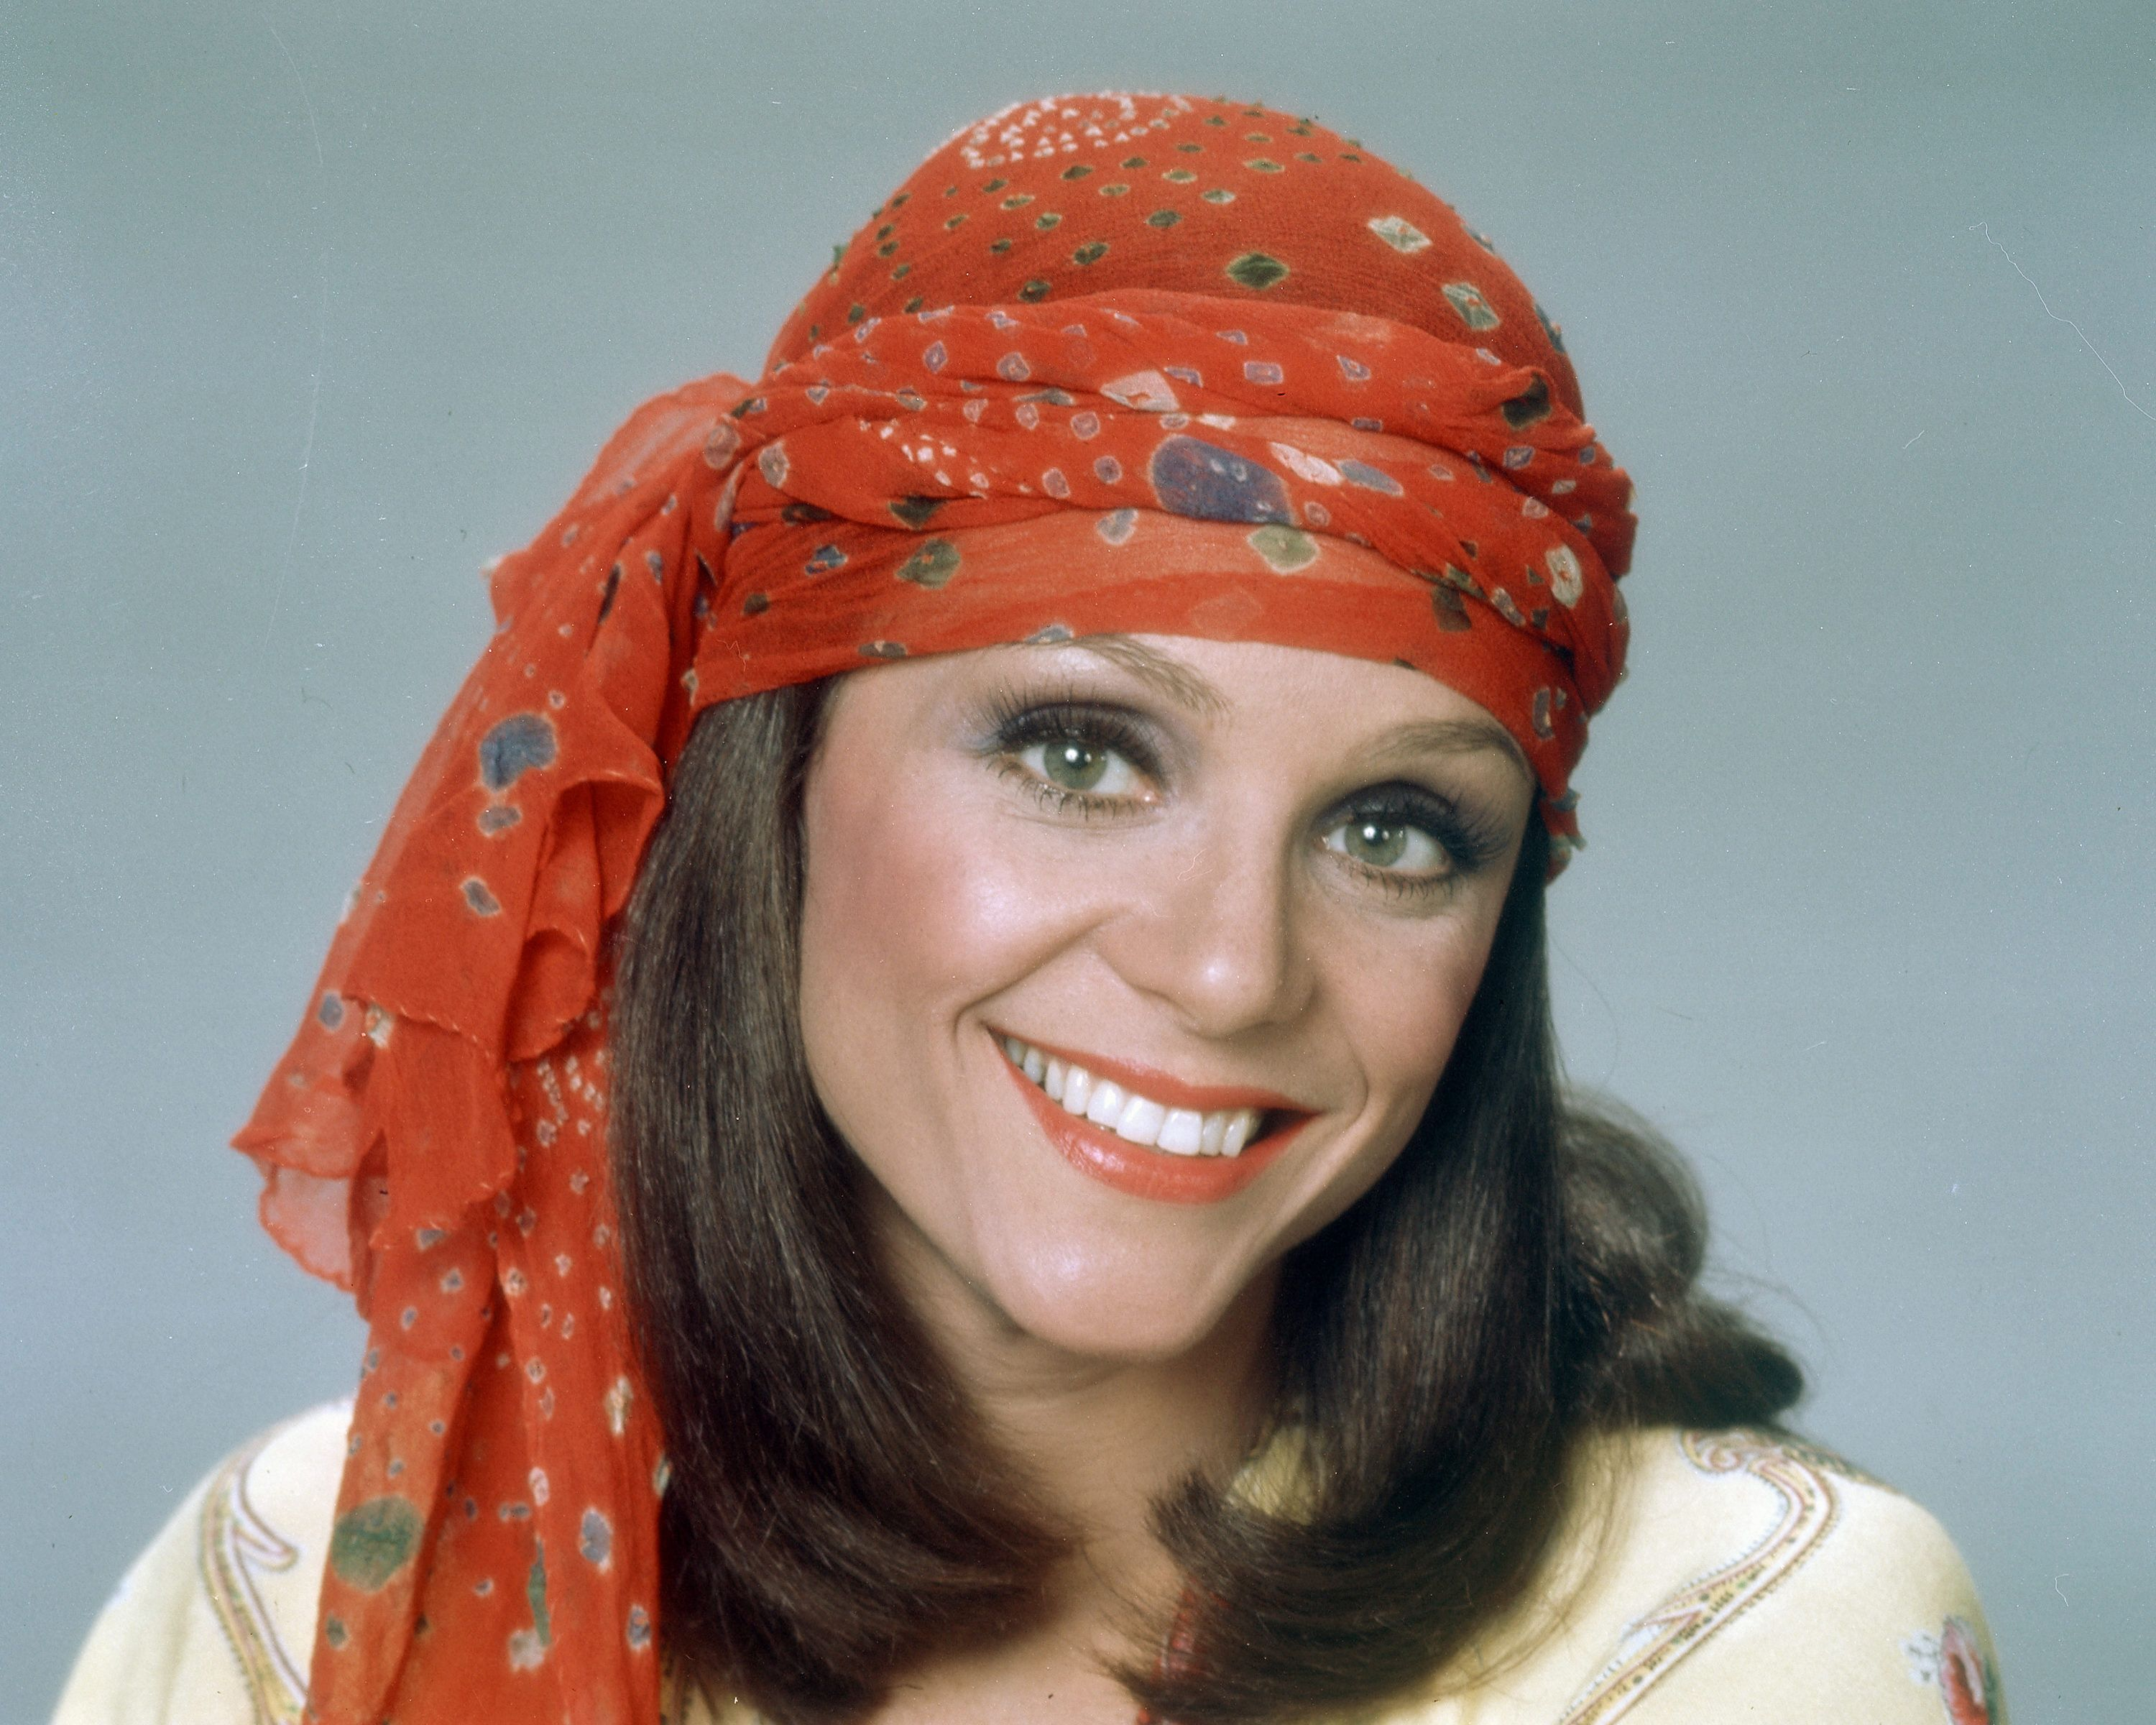 Valerie Harper, 'Mary Tyler Moore Show' co-star, has died